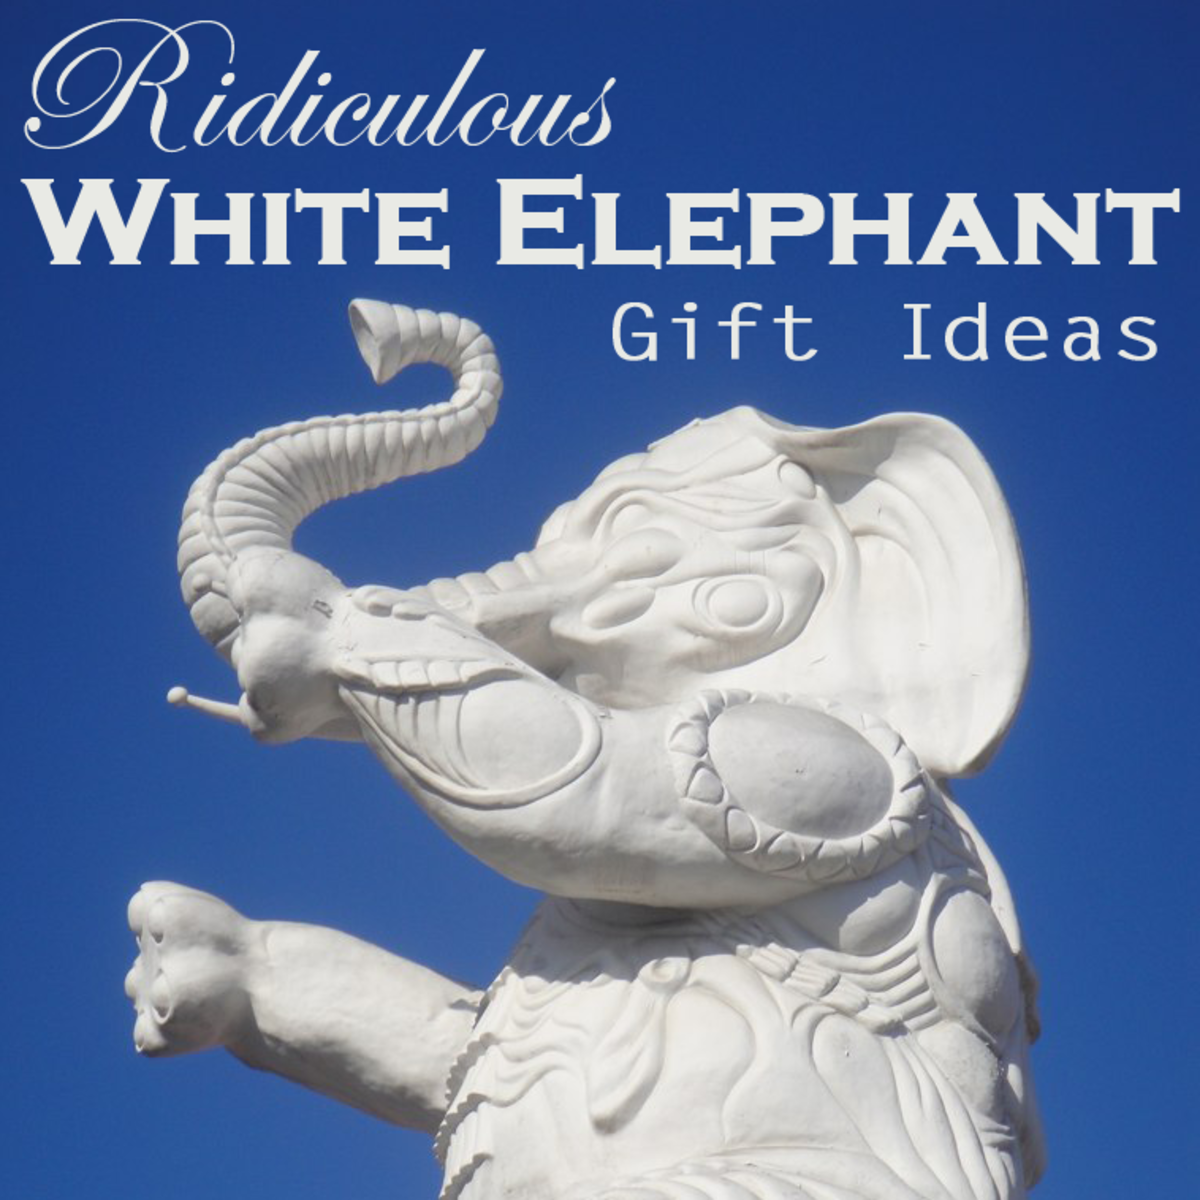 Ridiculous White Elephant Gift Ideas